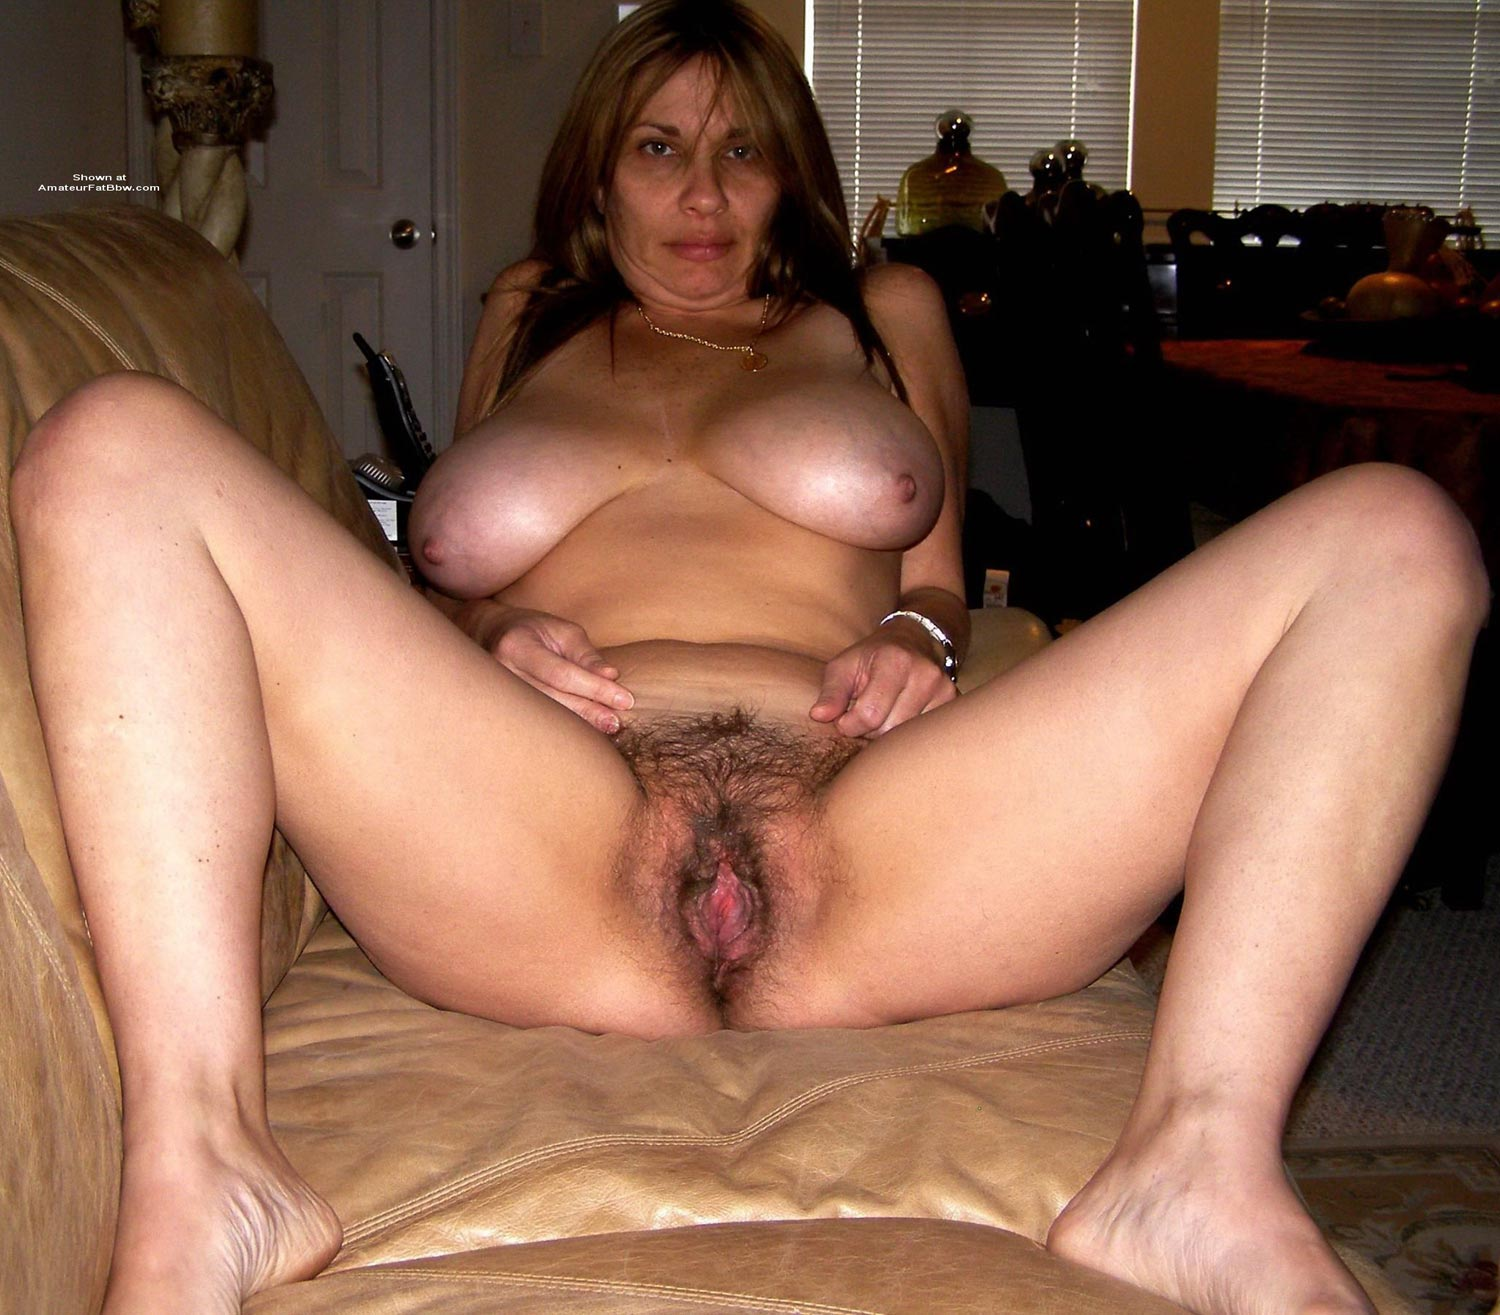 Crazy bachelor party slut load